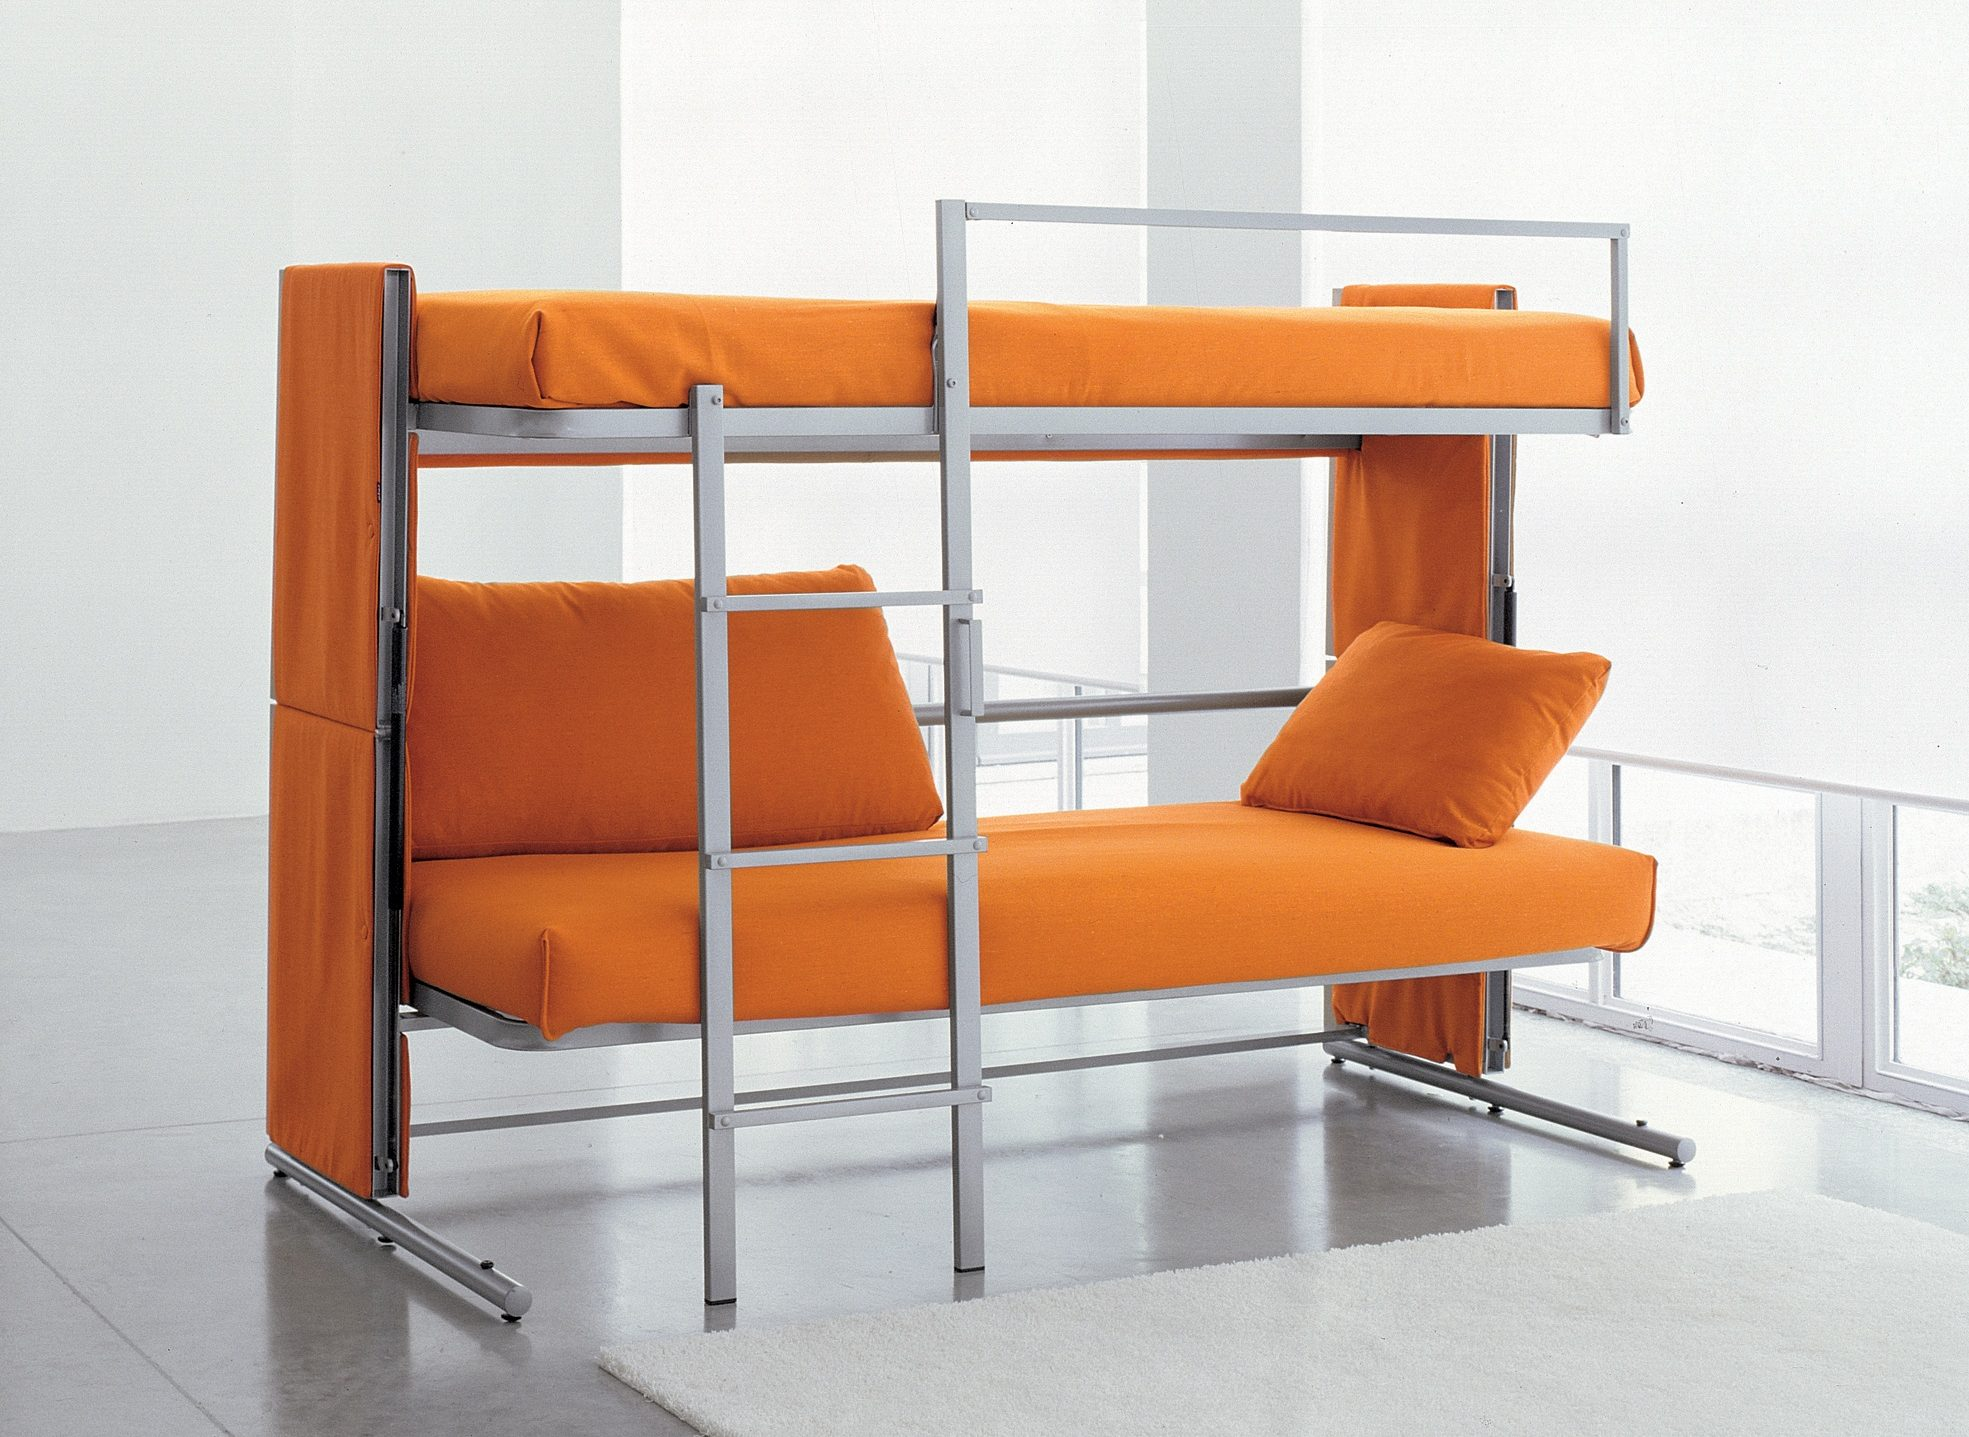 Stupendous Bed Bunk Bed With One Bed On Top Gamerscity Chair Design For Home Gamerscityorg